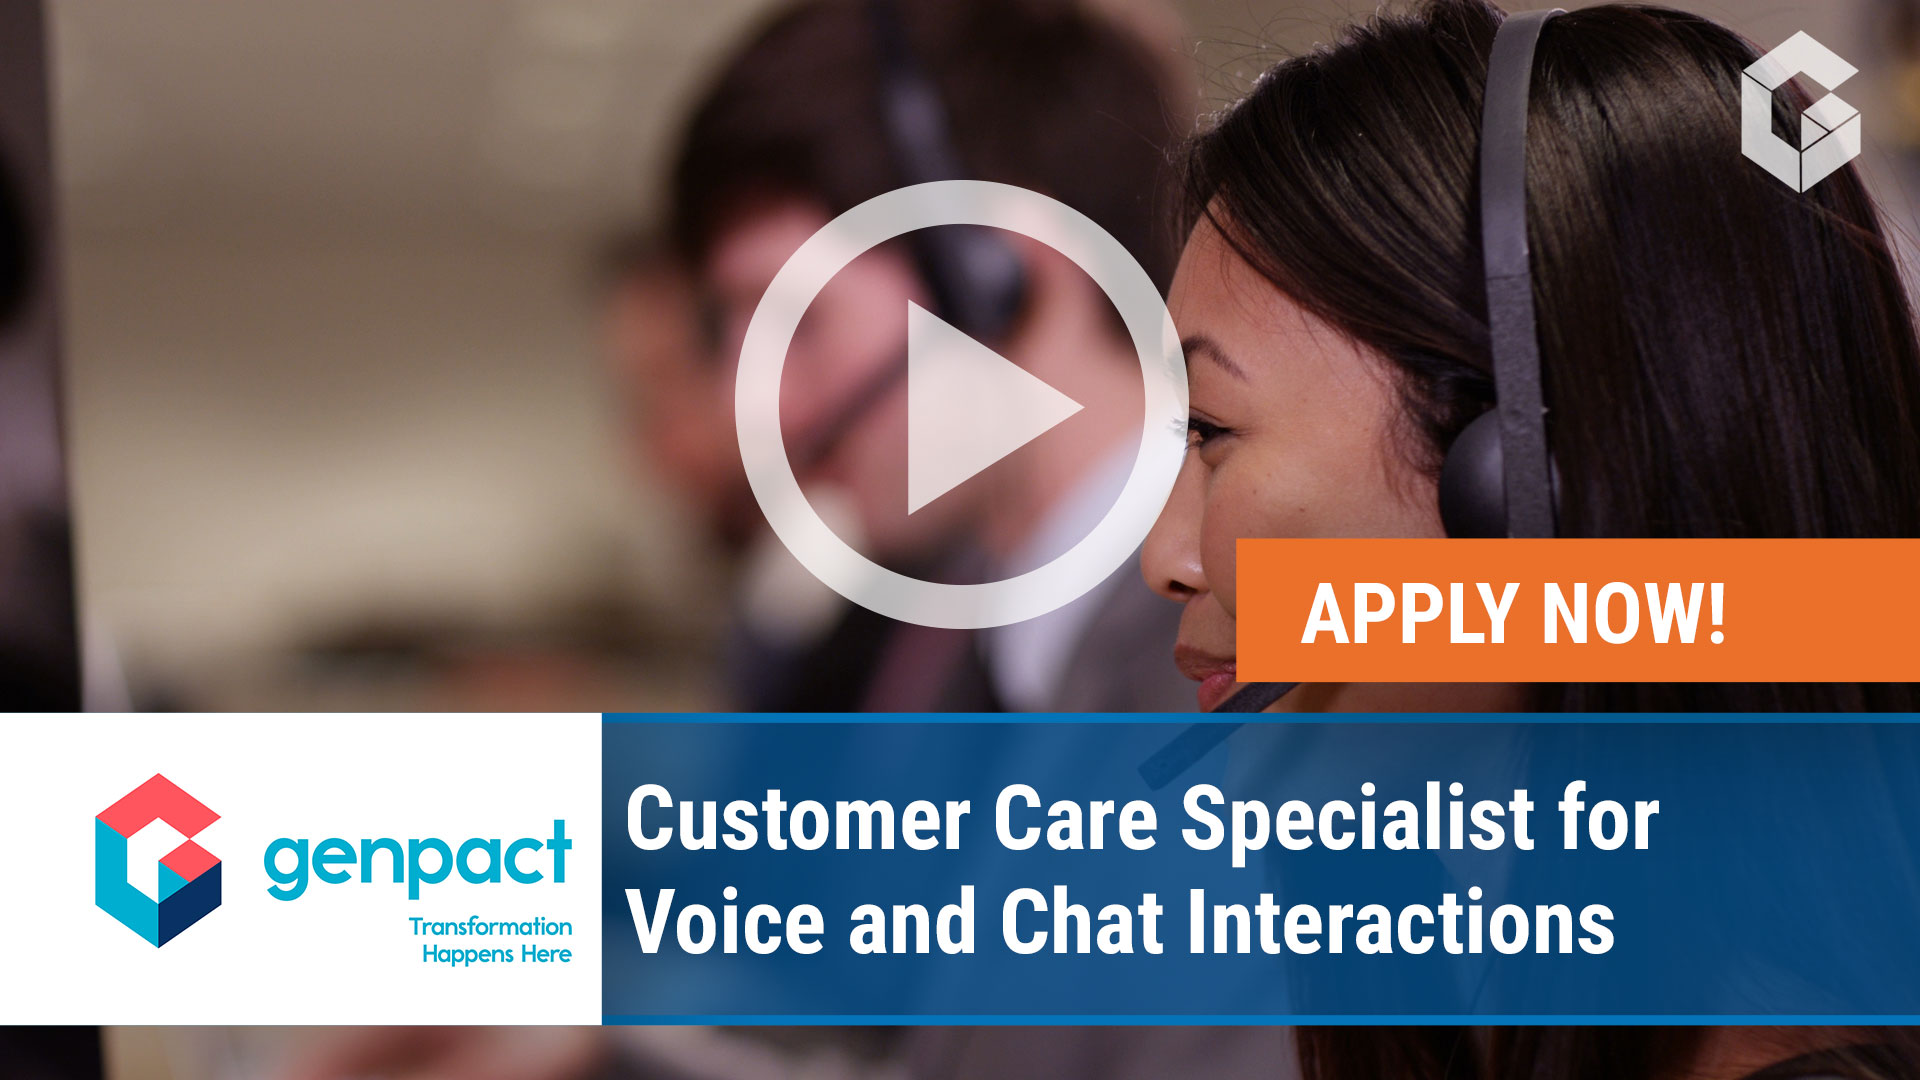 Watch our careers video for available job opening Customer Care Specialist for Voice and Chat Inter in Richardson, Texas